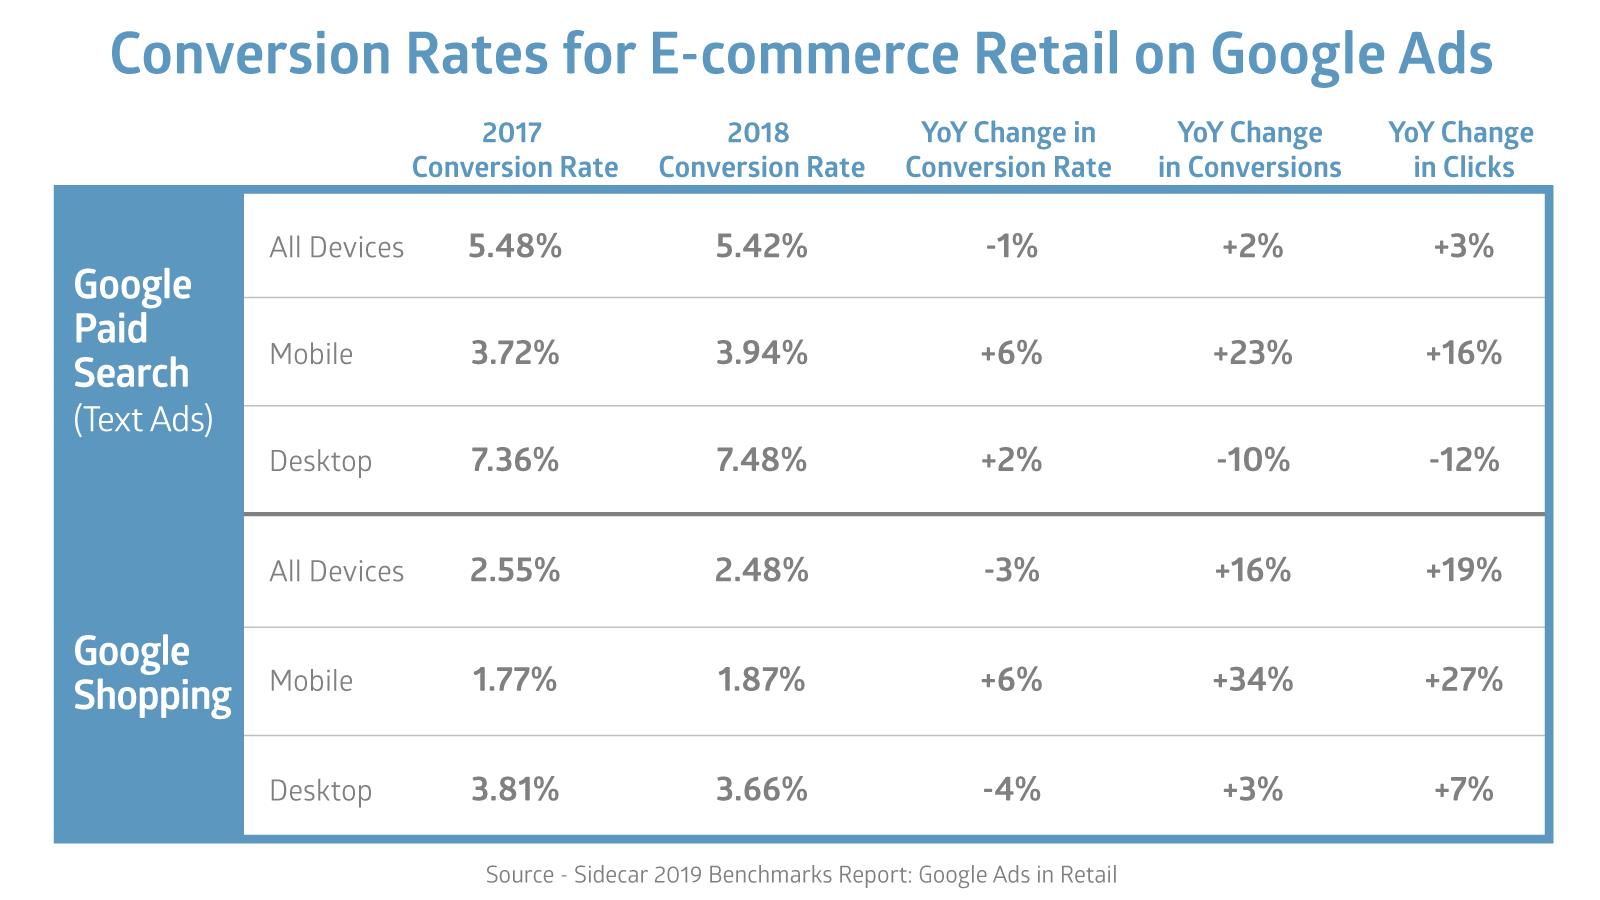 Conversion Rates for E-commerce Retail on Google Ads 2017-2018